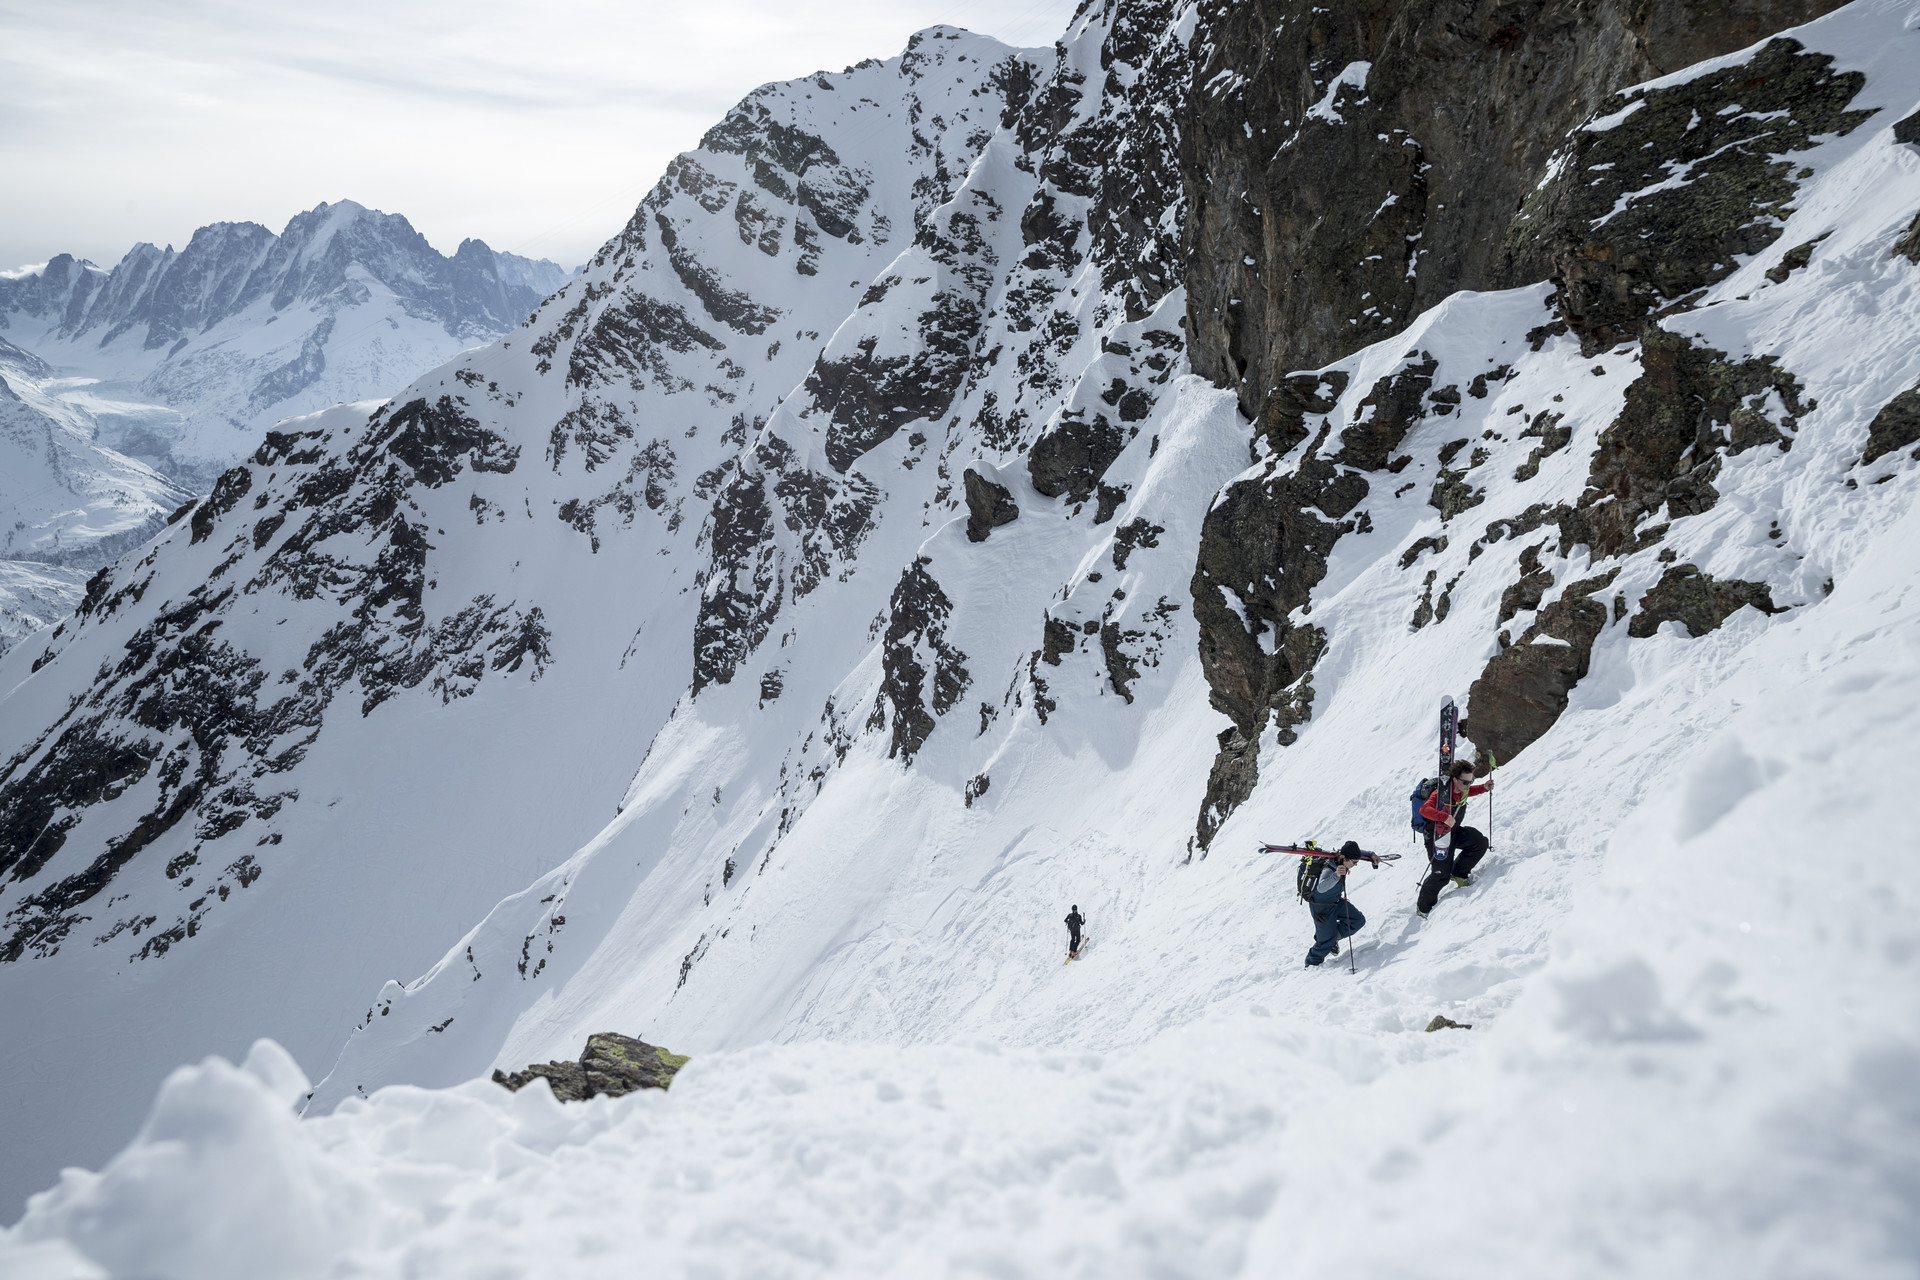 SWATCH FREERIDE WORLD TOUR MOVES FIRST STAGE TO VALLNORD-ARCALÍS, ANDORRA